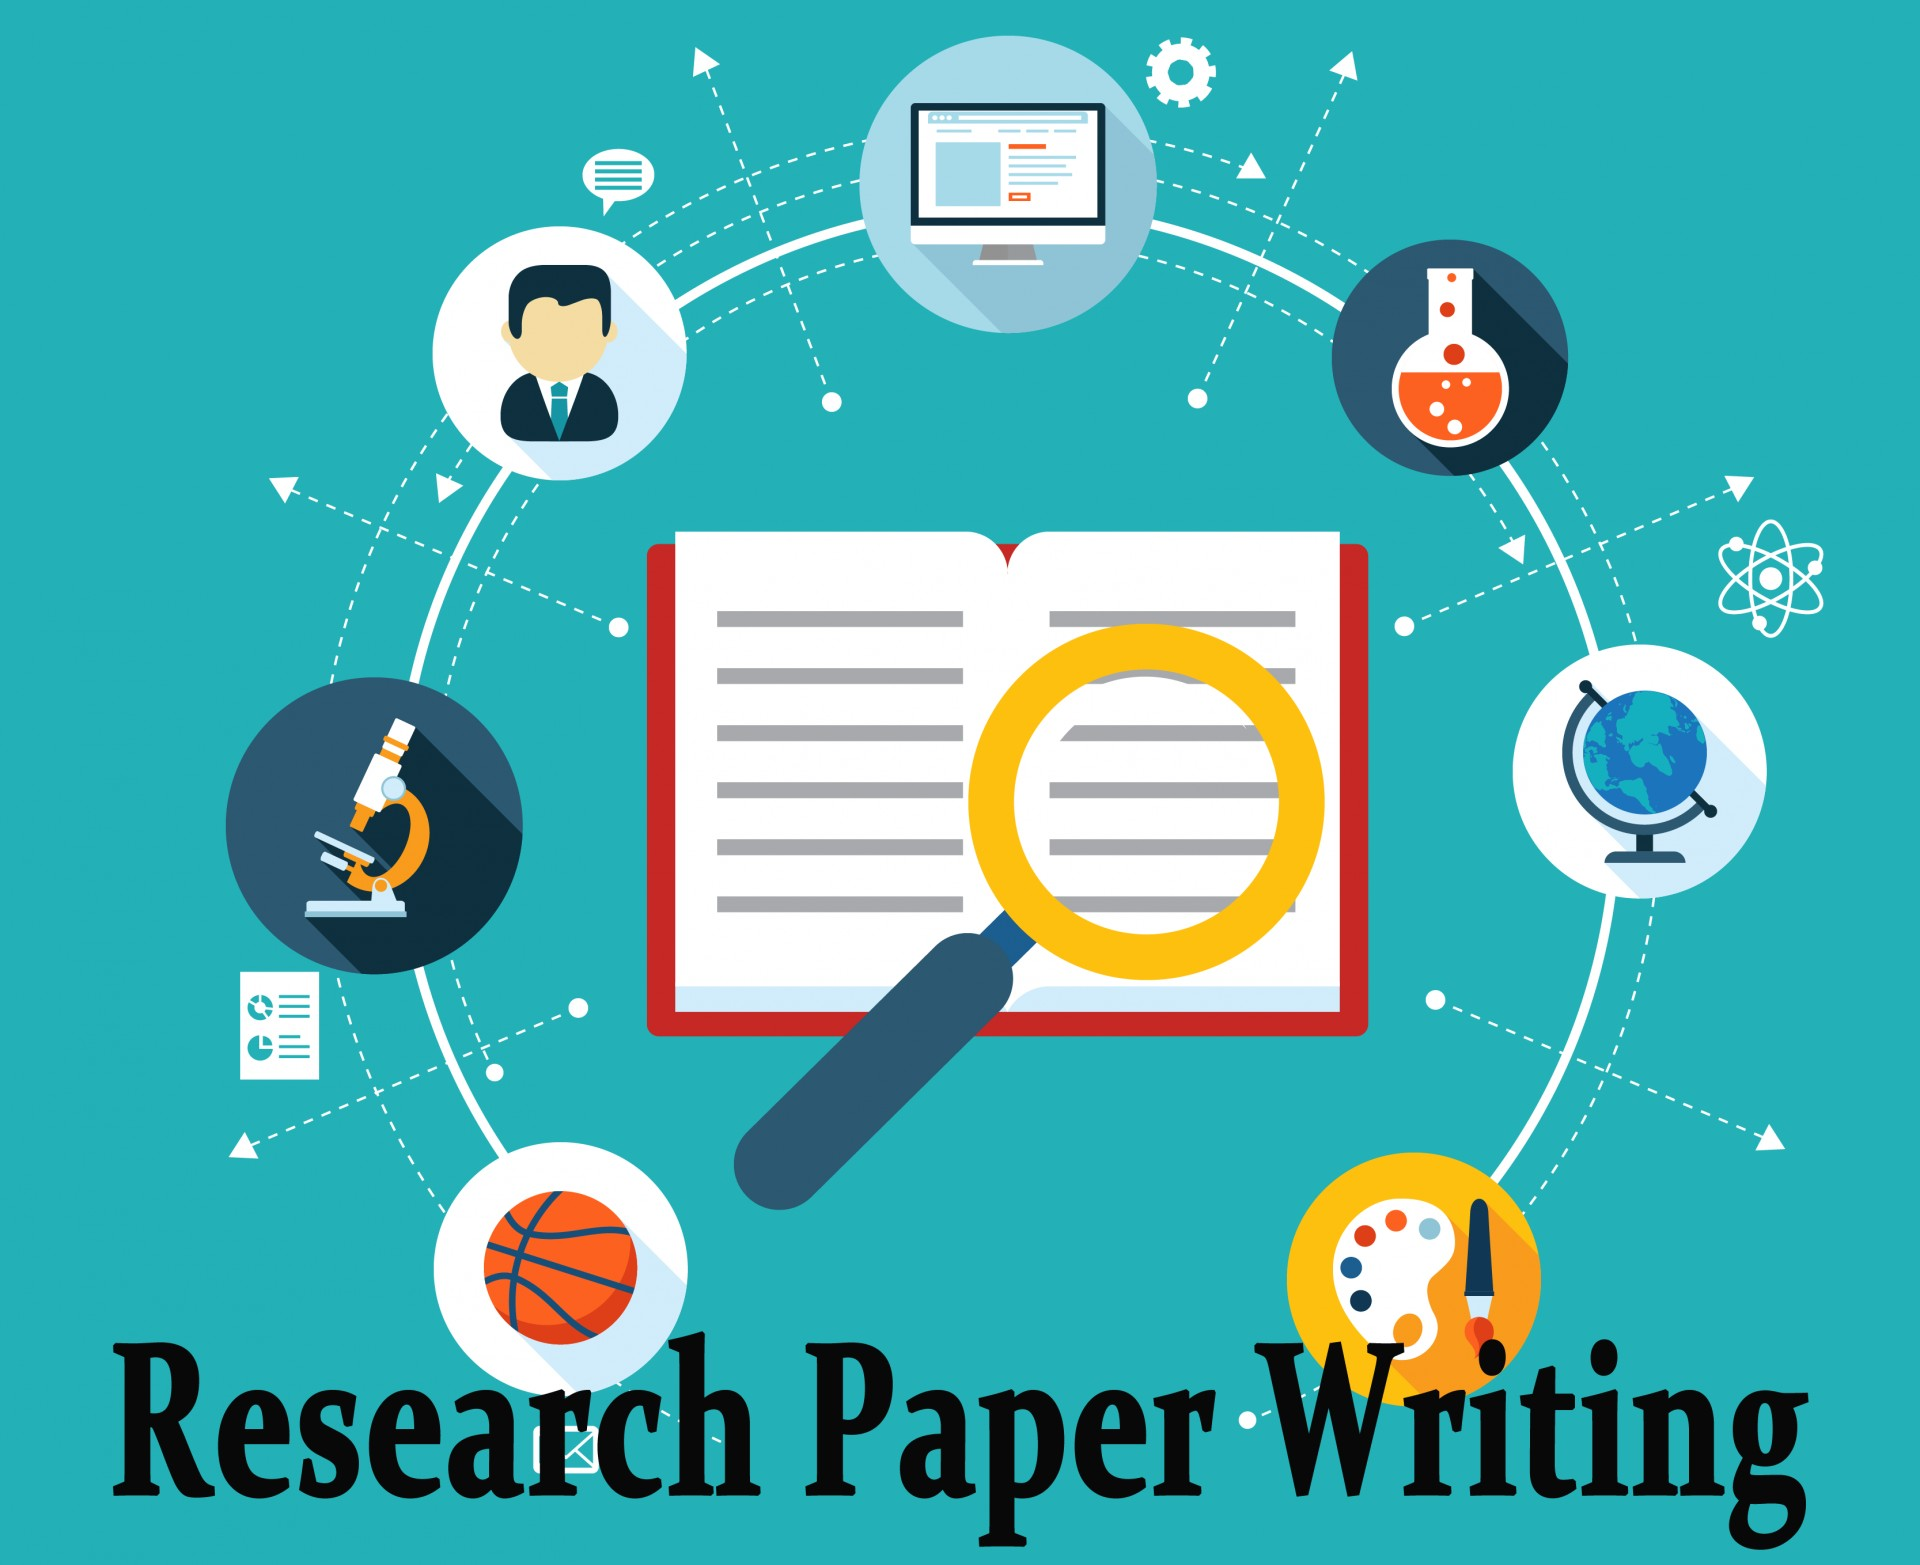 008 Writing Of Research Paper 503 Effective Fascinating Great Pdf Harvard Style Sample 1920